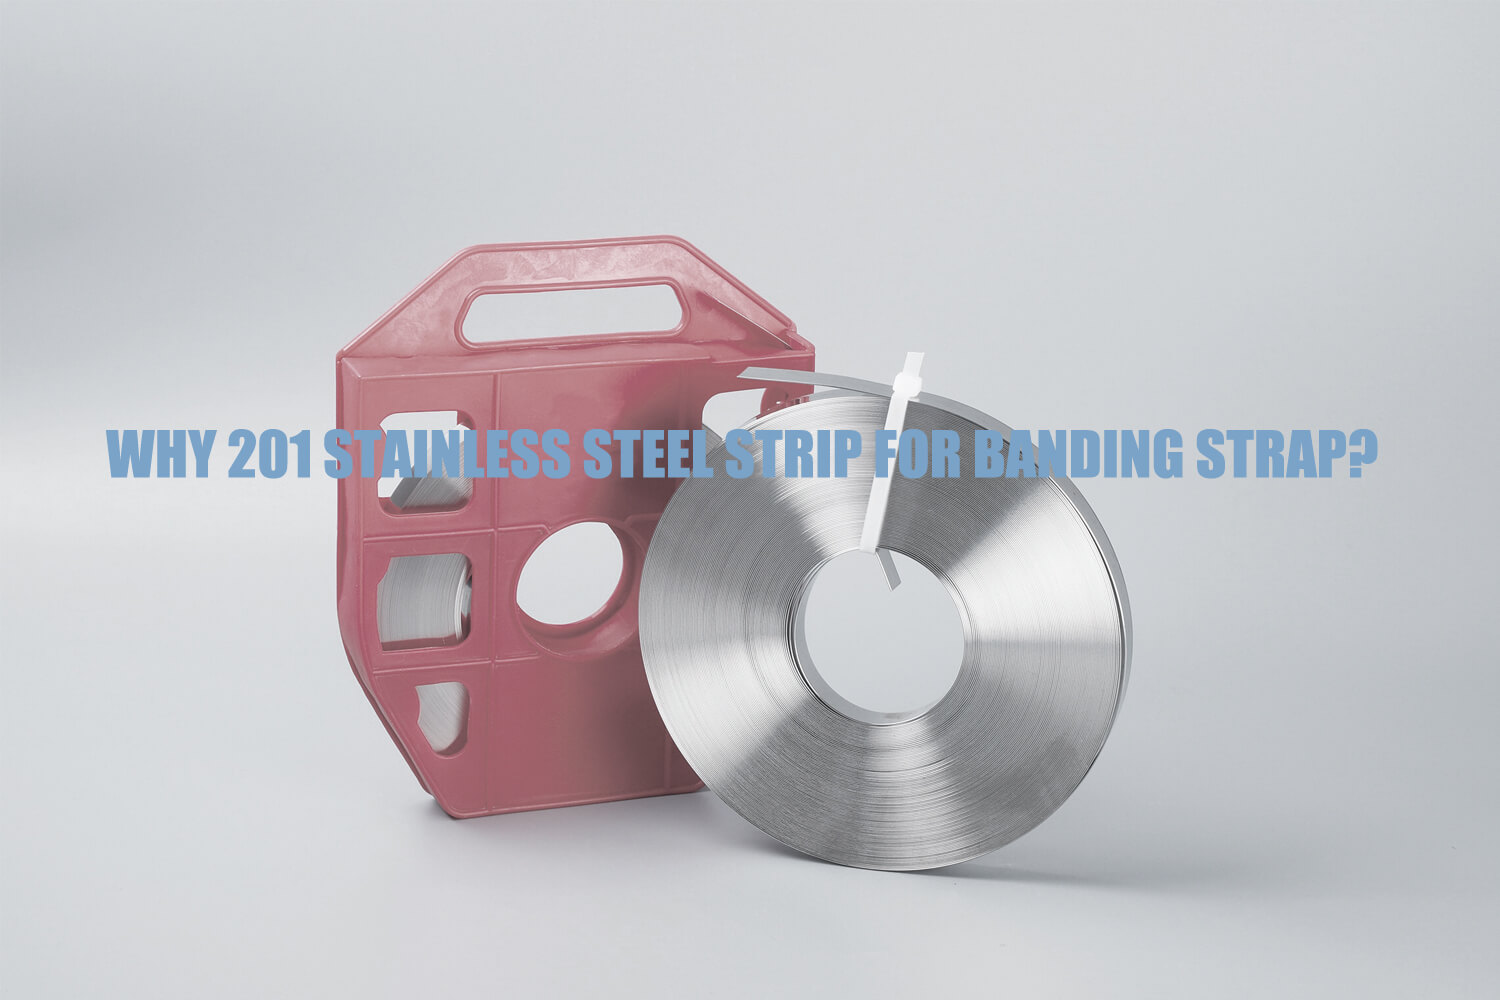 why-201-stainless-steel-strip-for-banding-strap